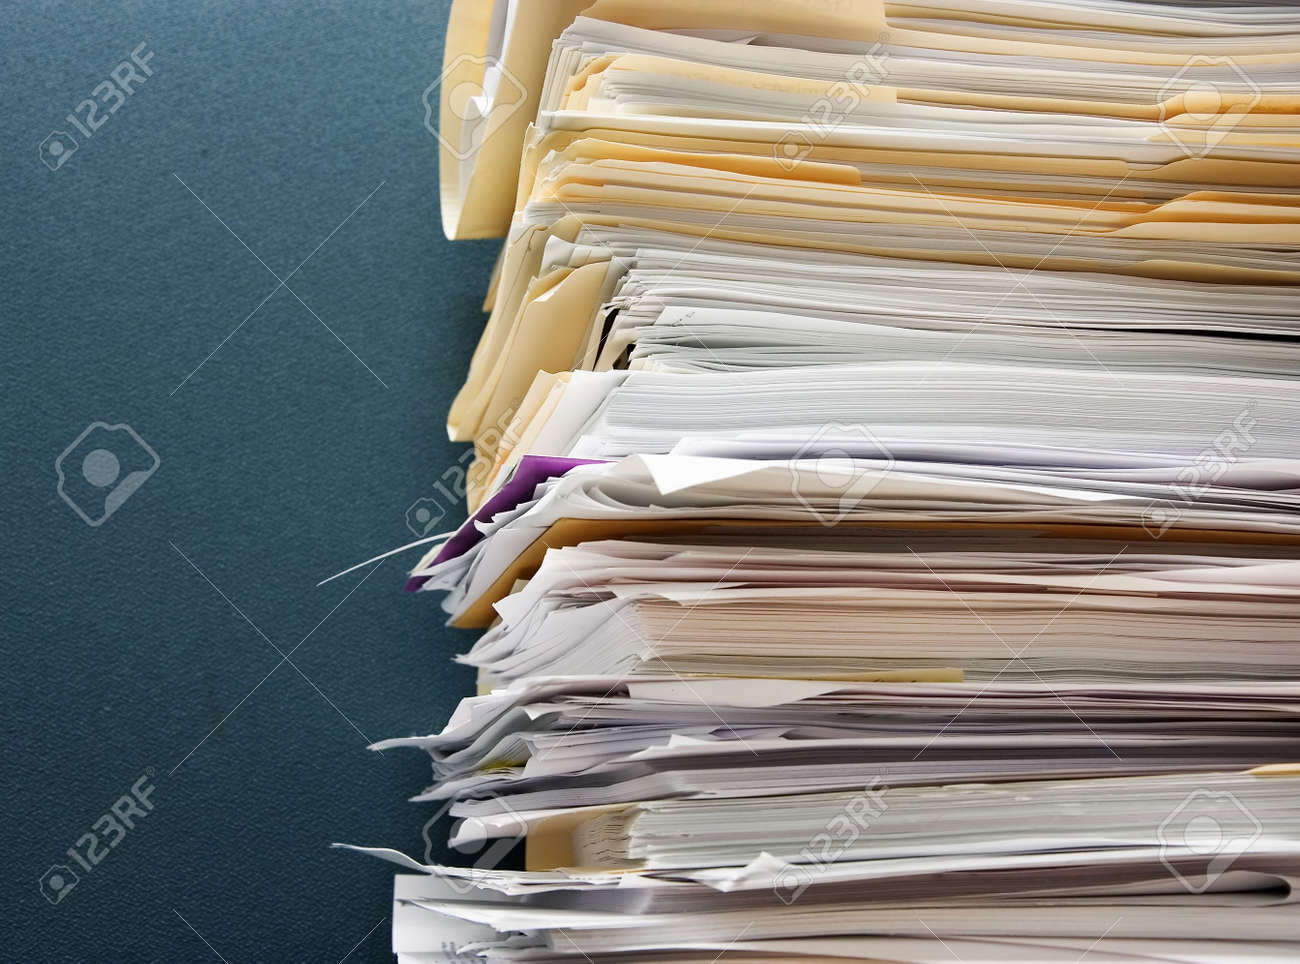 Pile of paperwork against a textured green cubicle wall - 2356215